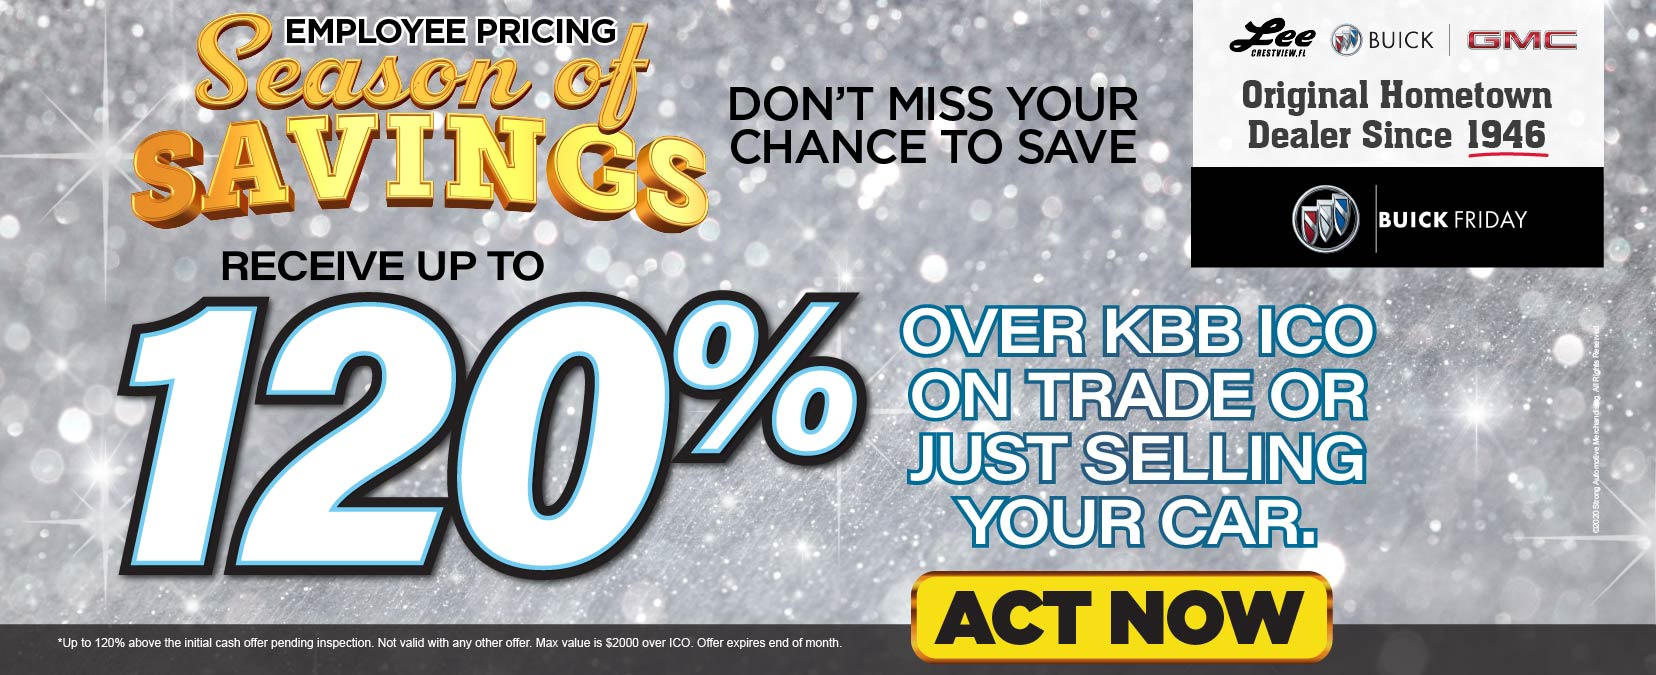 Receive up to 120% over KBB